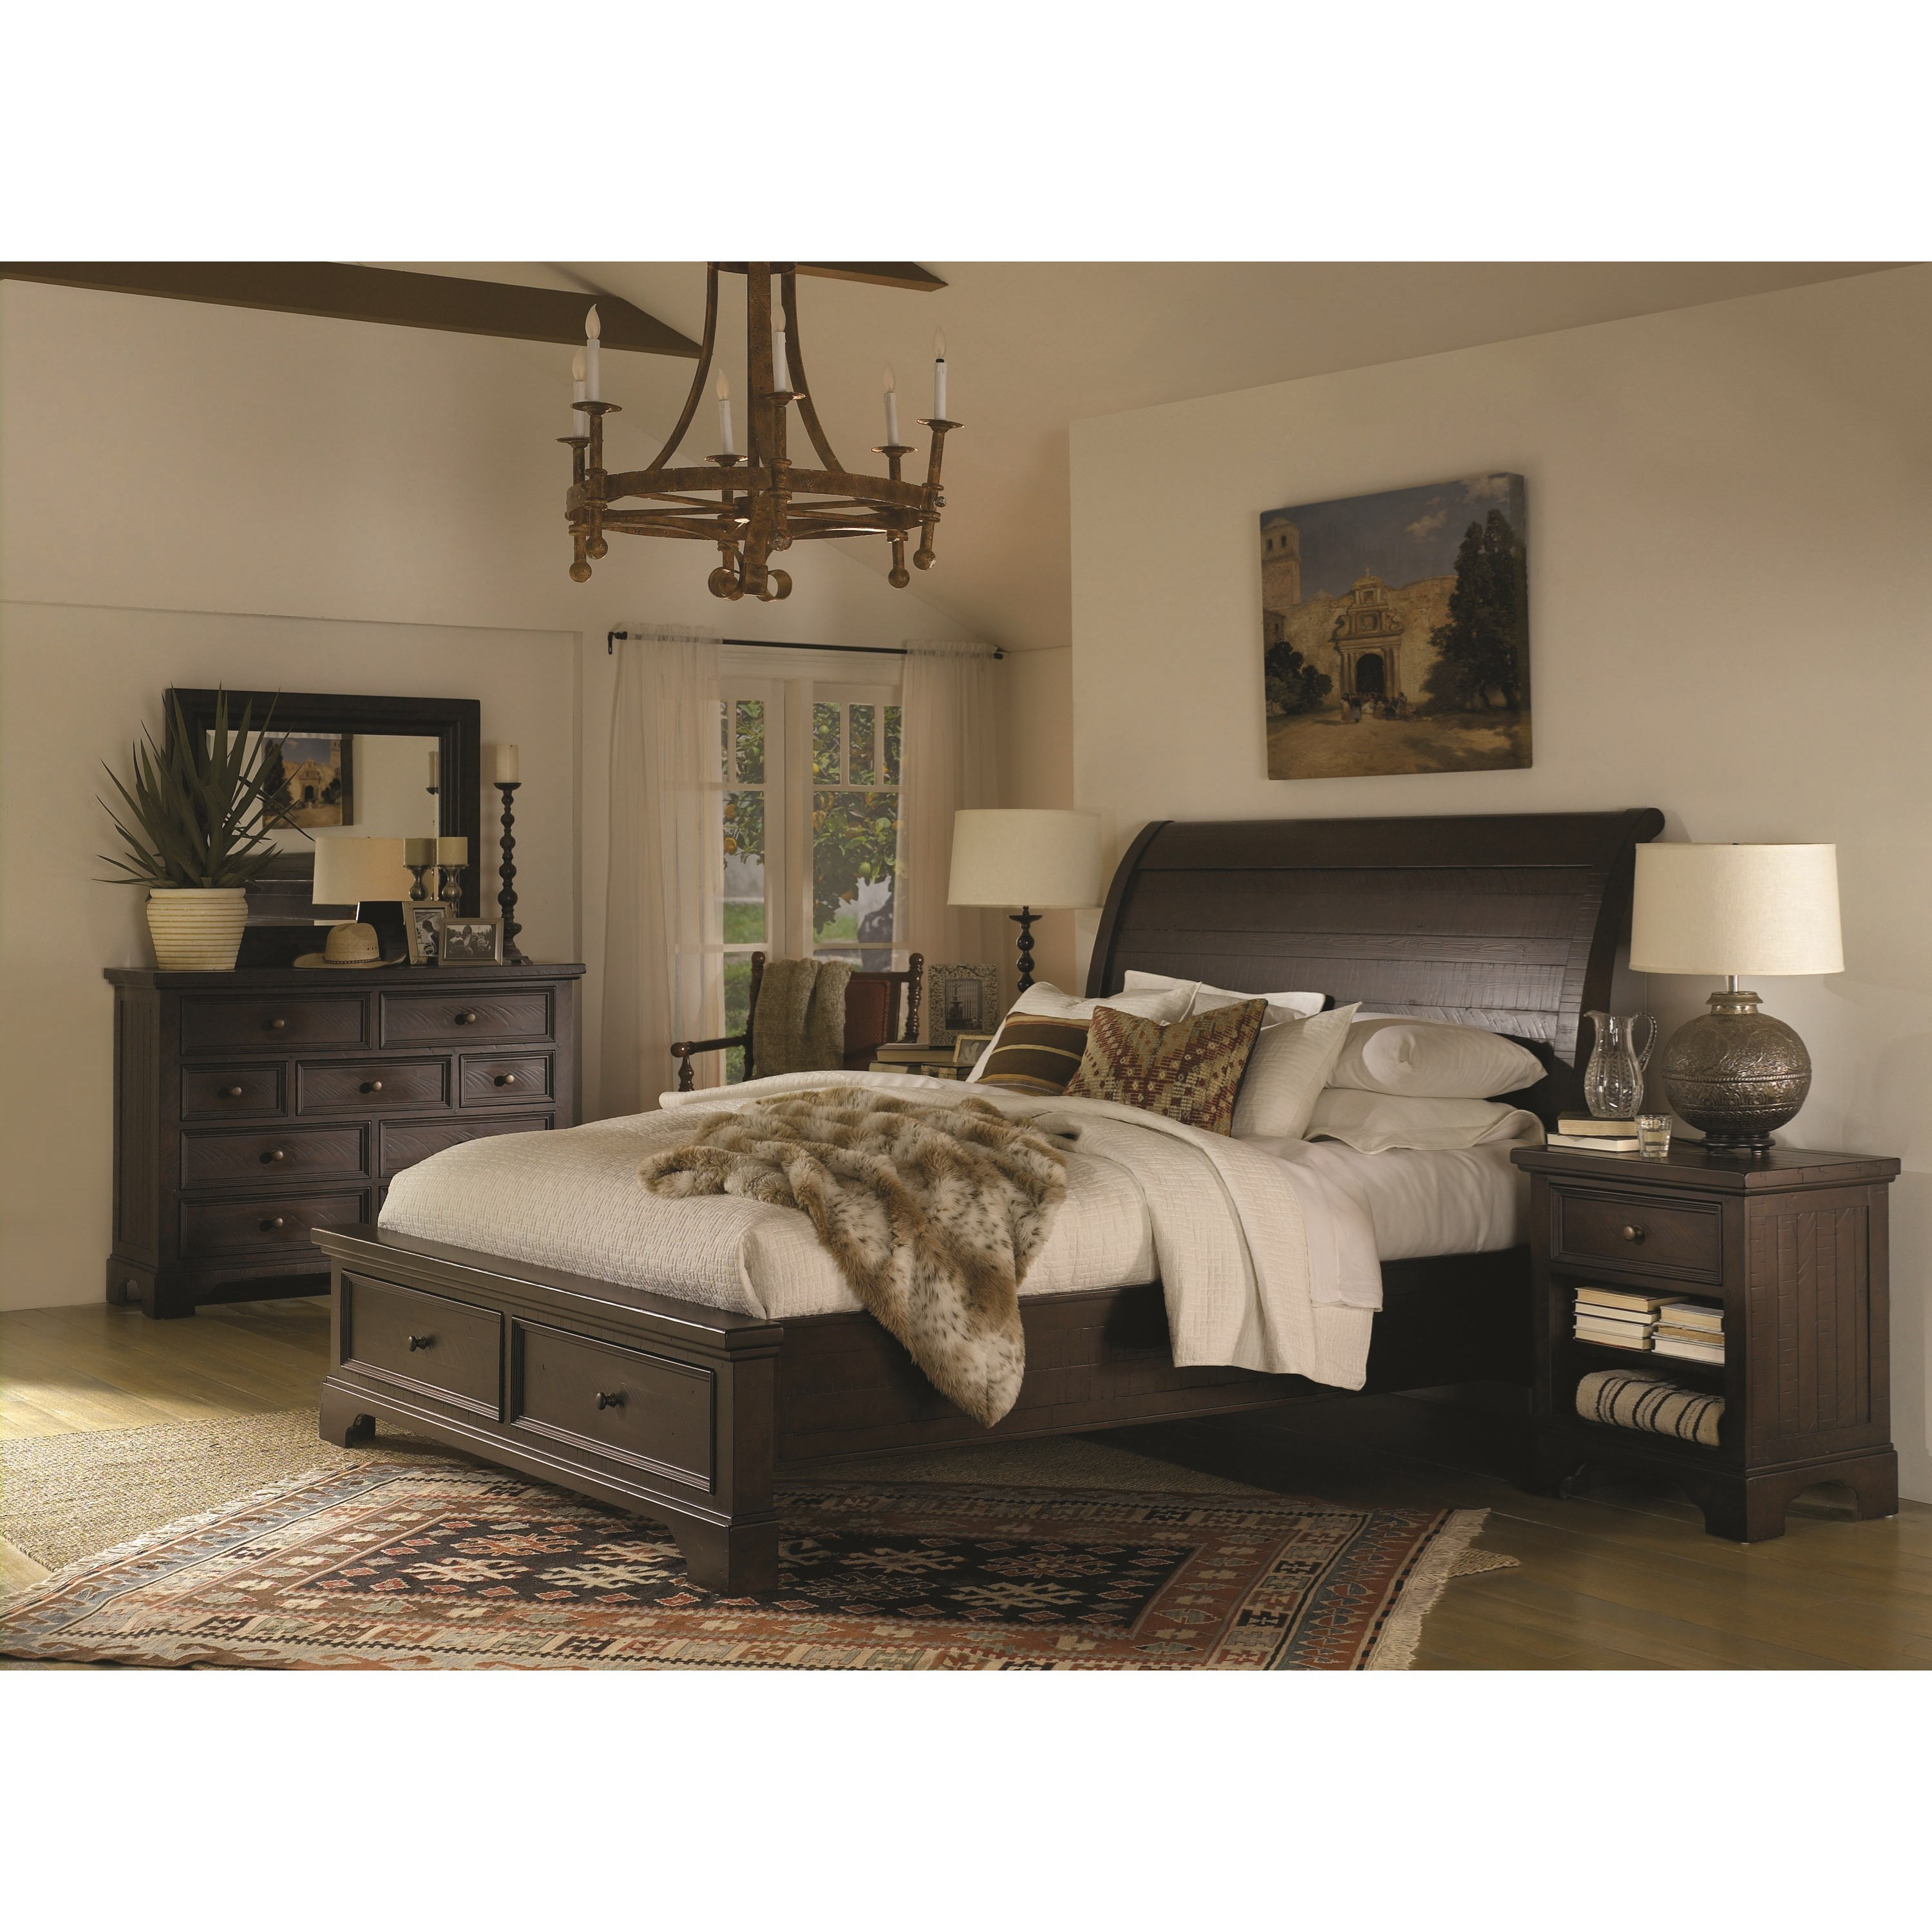 Aspenhome Bayfield King Sleigh Bed With Under Bed Storage